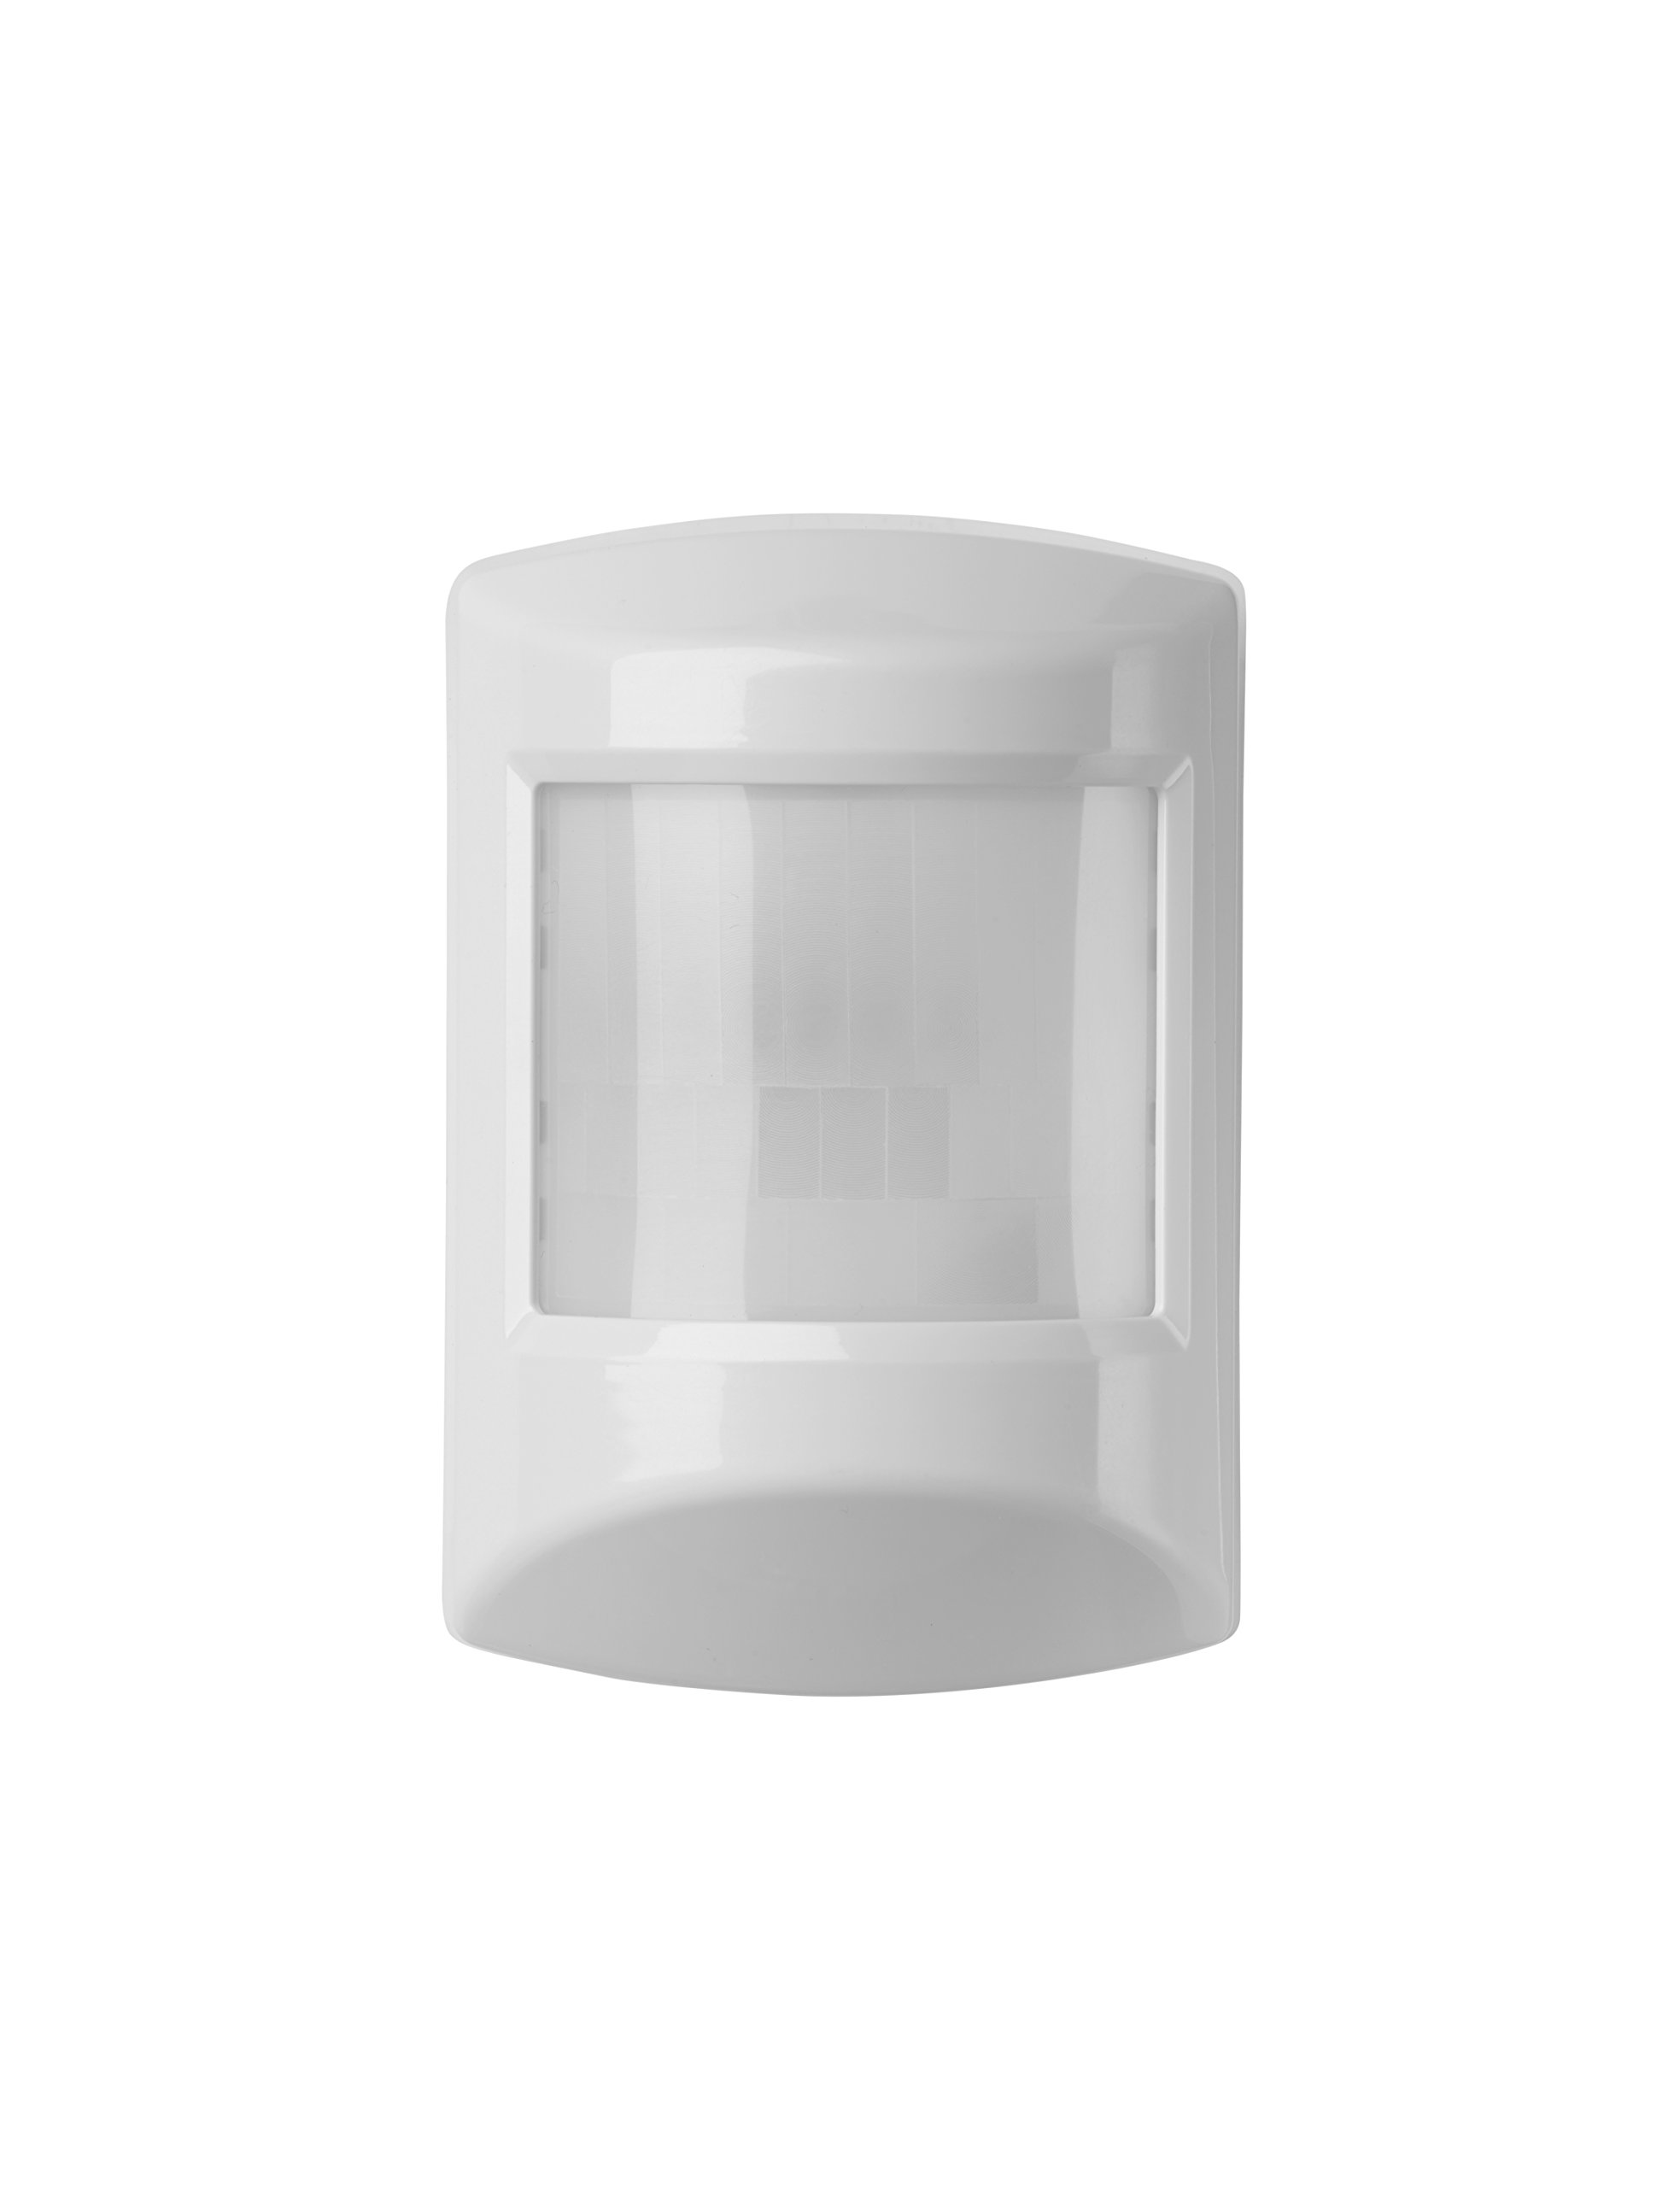 Z-wave Plus Motion Detector, Easy to install with PET Immunity, White (PIRZWAVE2.5-ECO) by Ecolink